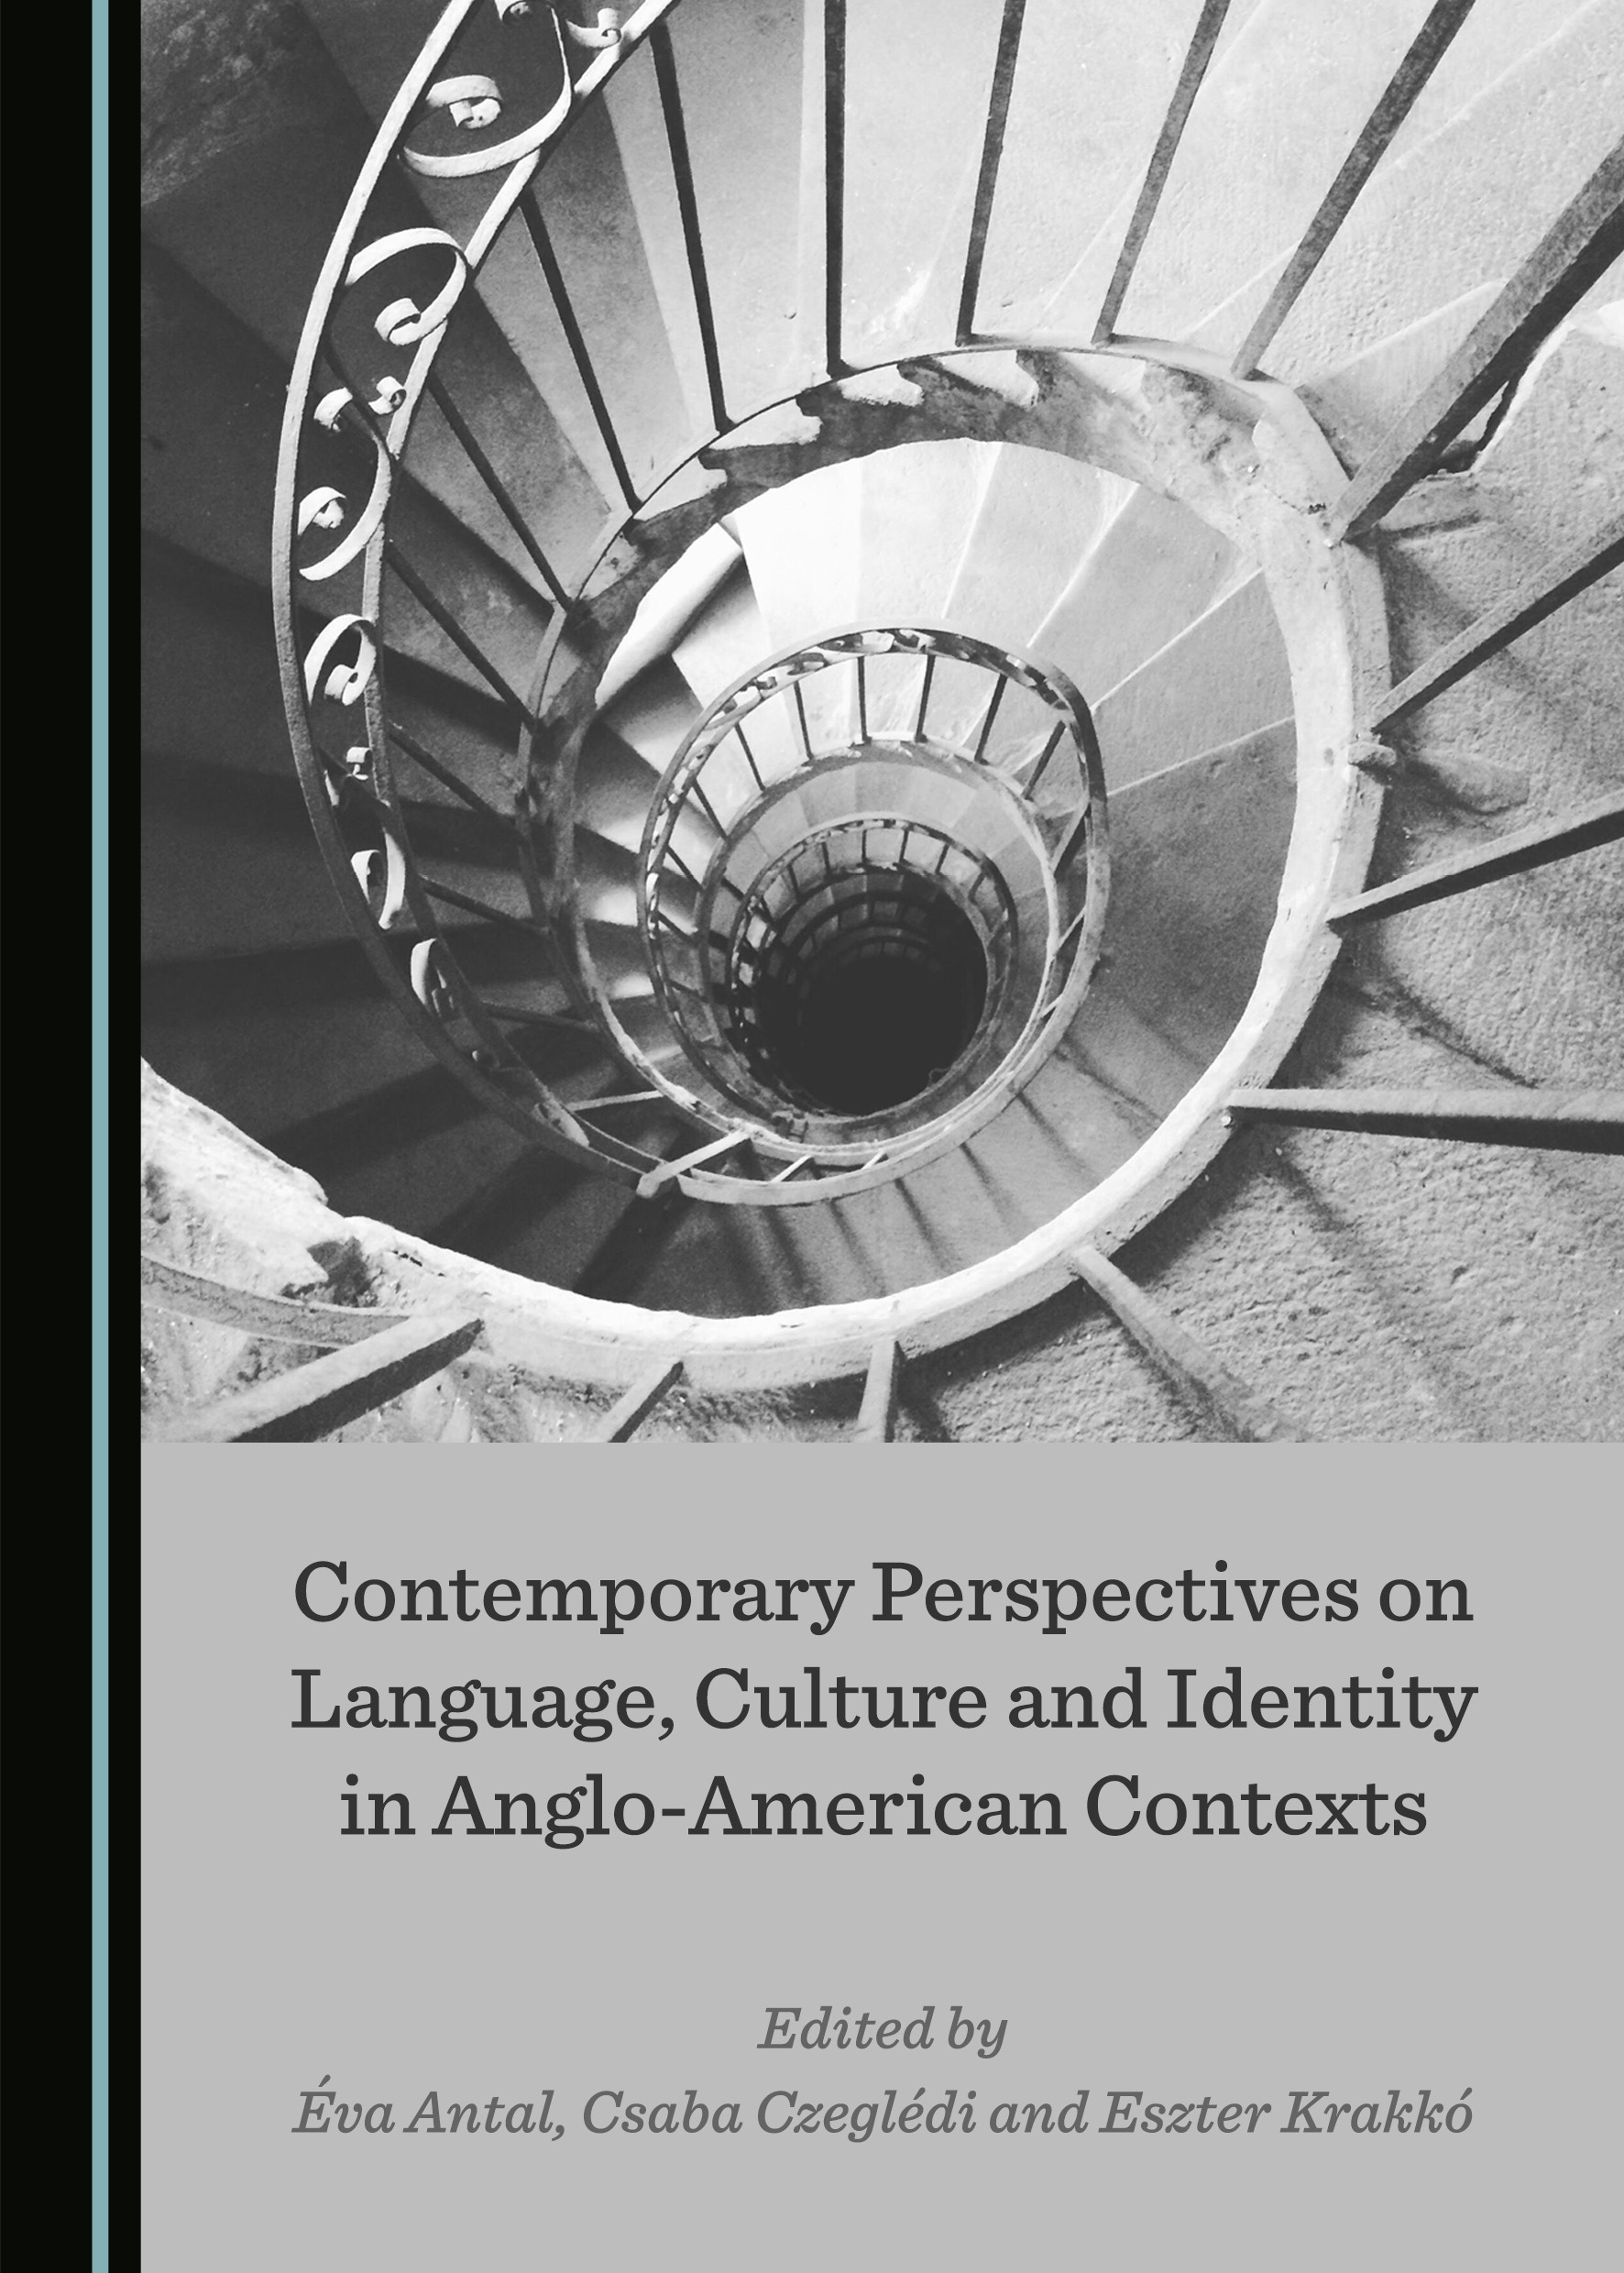 Contemporary Perspectives on Language, Culture and Identity in Anglo-American Contexts